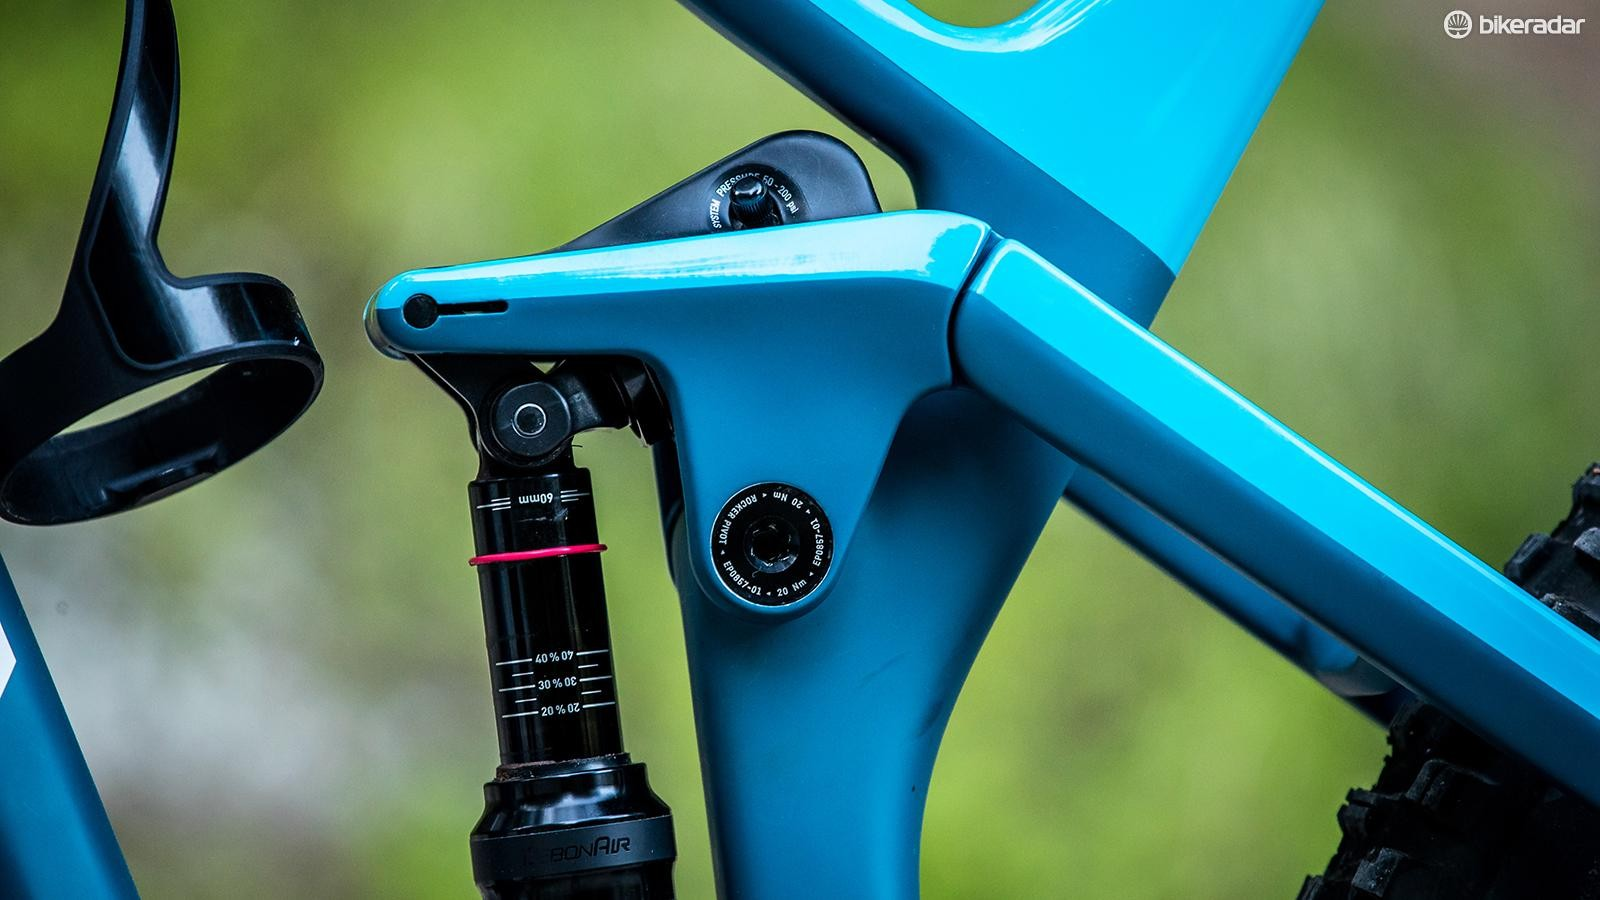 Canyon's Shapeshifter Stage 2.0 piston in its downhill mode position